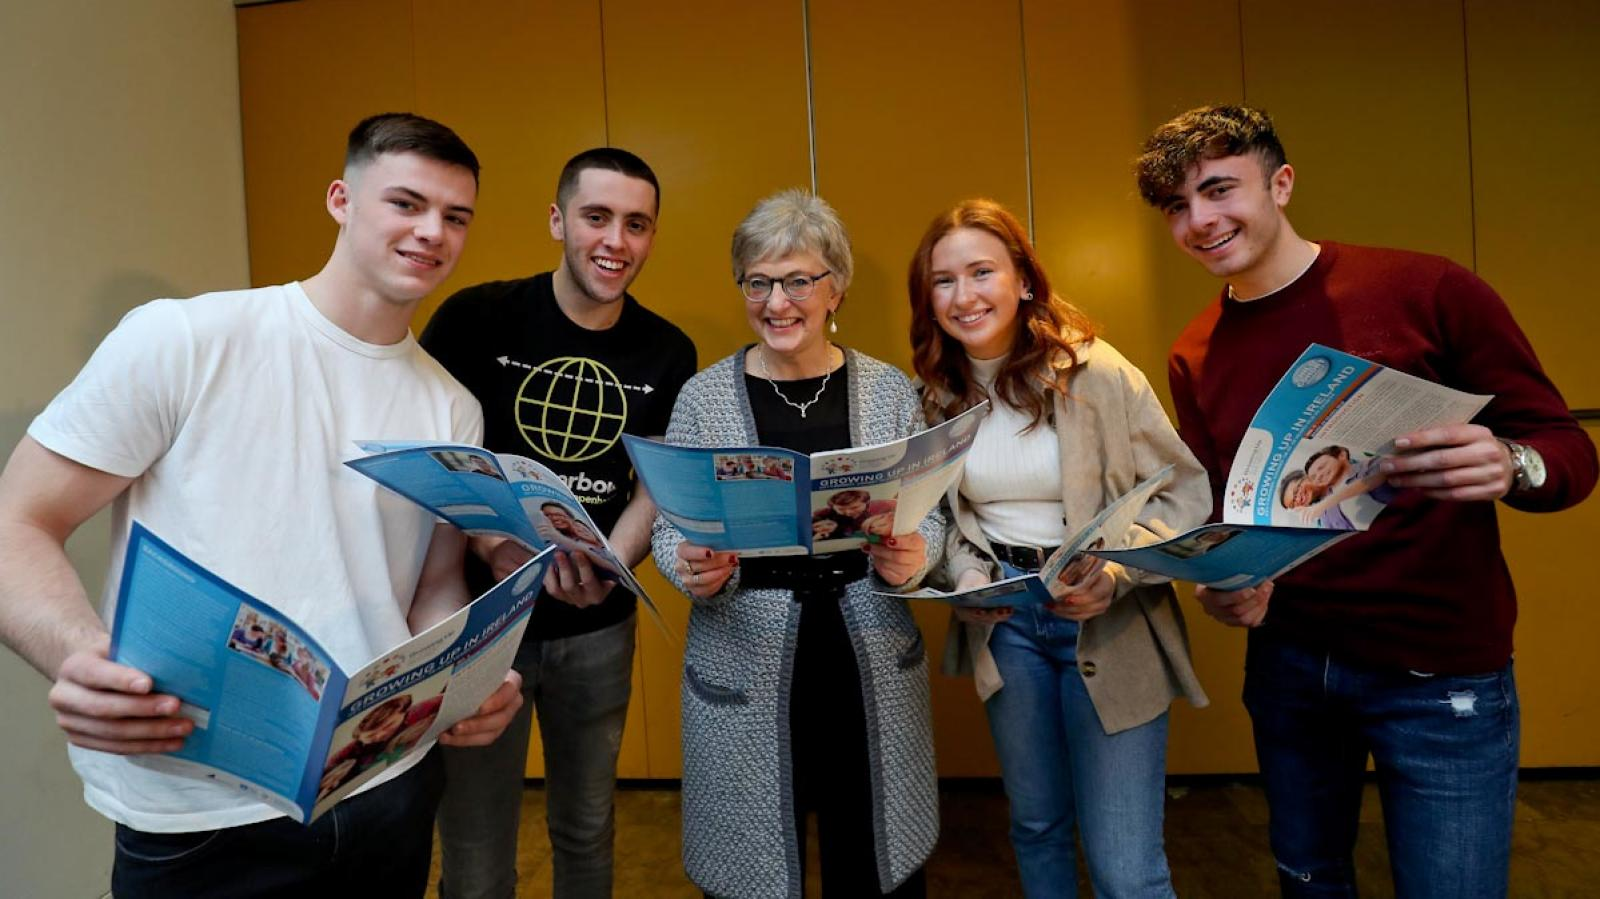 Minister Katherine Zappone with young people at the launch of Growing Up in Ireland research on the lives of 20-year-olds